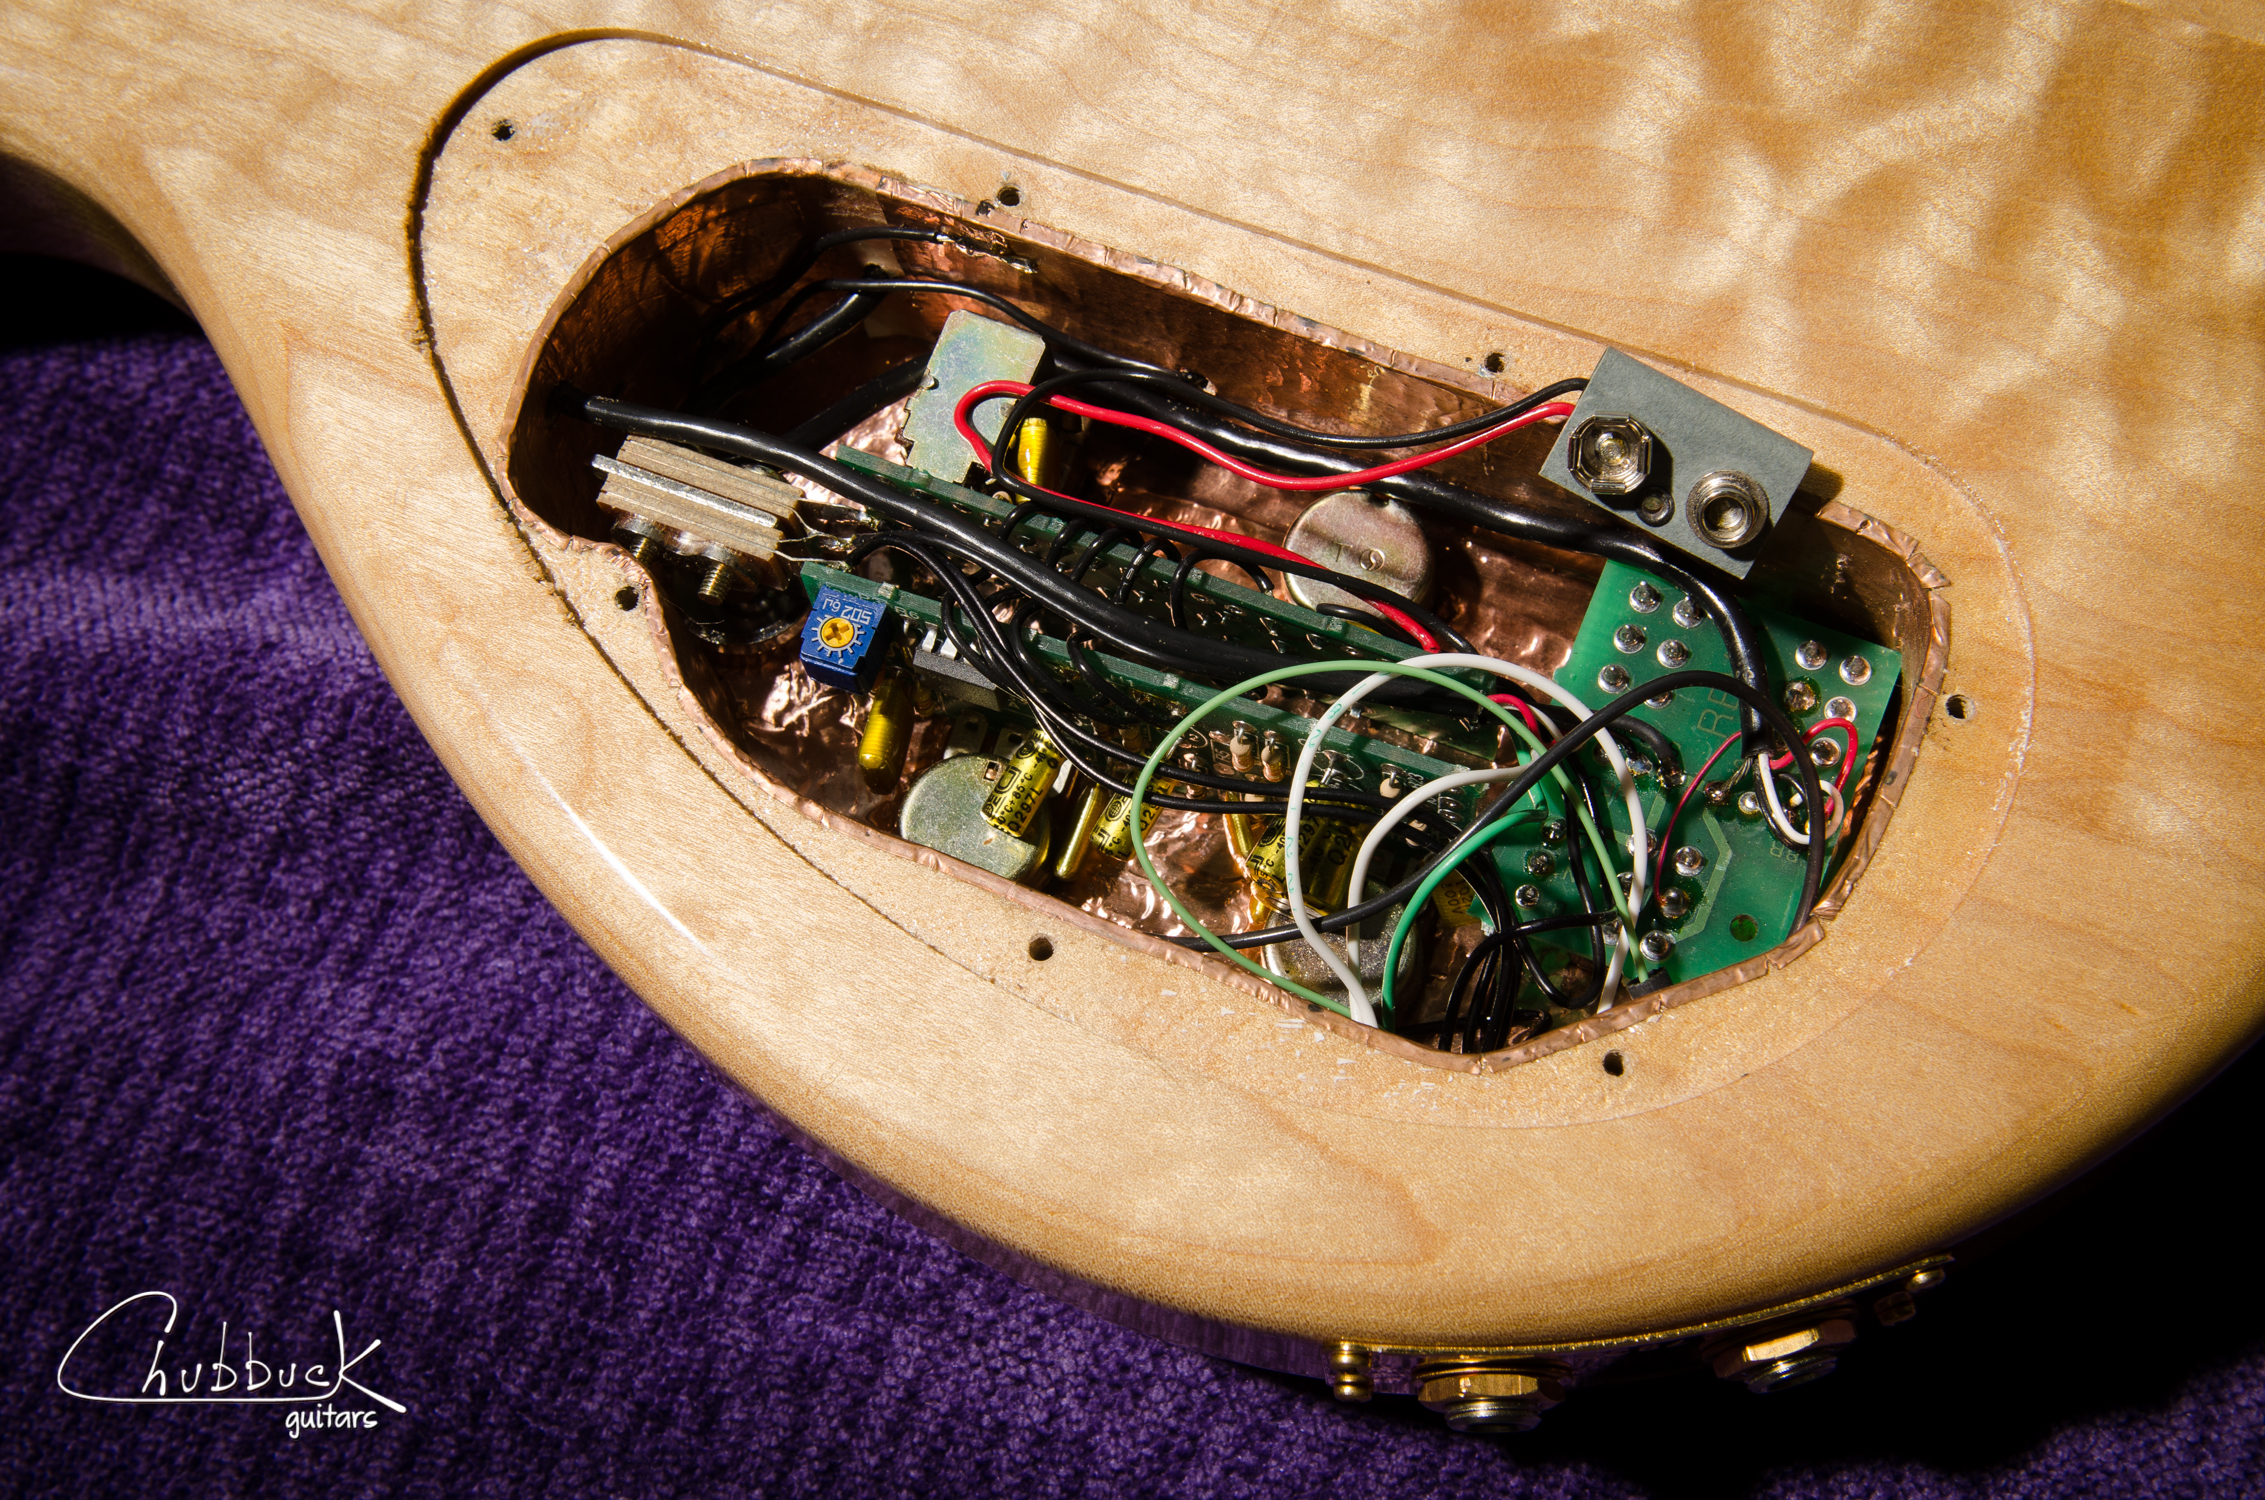 A look inside the control cavity at the active circuit. The controls: neck volume, neck tone, bridge volume, bridge tone, coil taps for each pickup and a phase switch when running both pickups. Note the stereo output jacks to split the signal from each pickup. This will all be removed and converted to passive and mono.